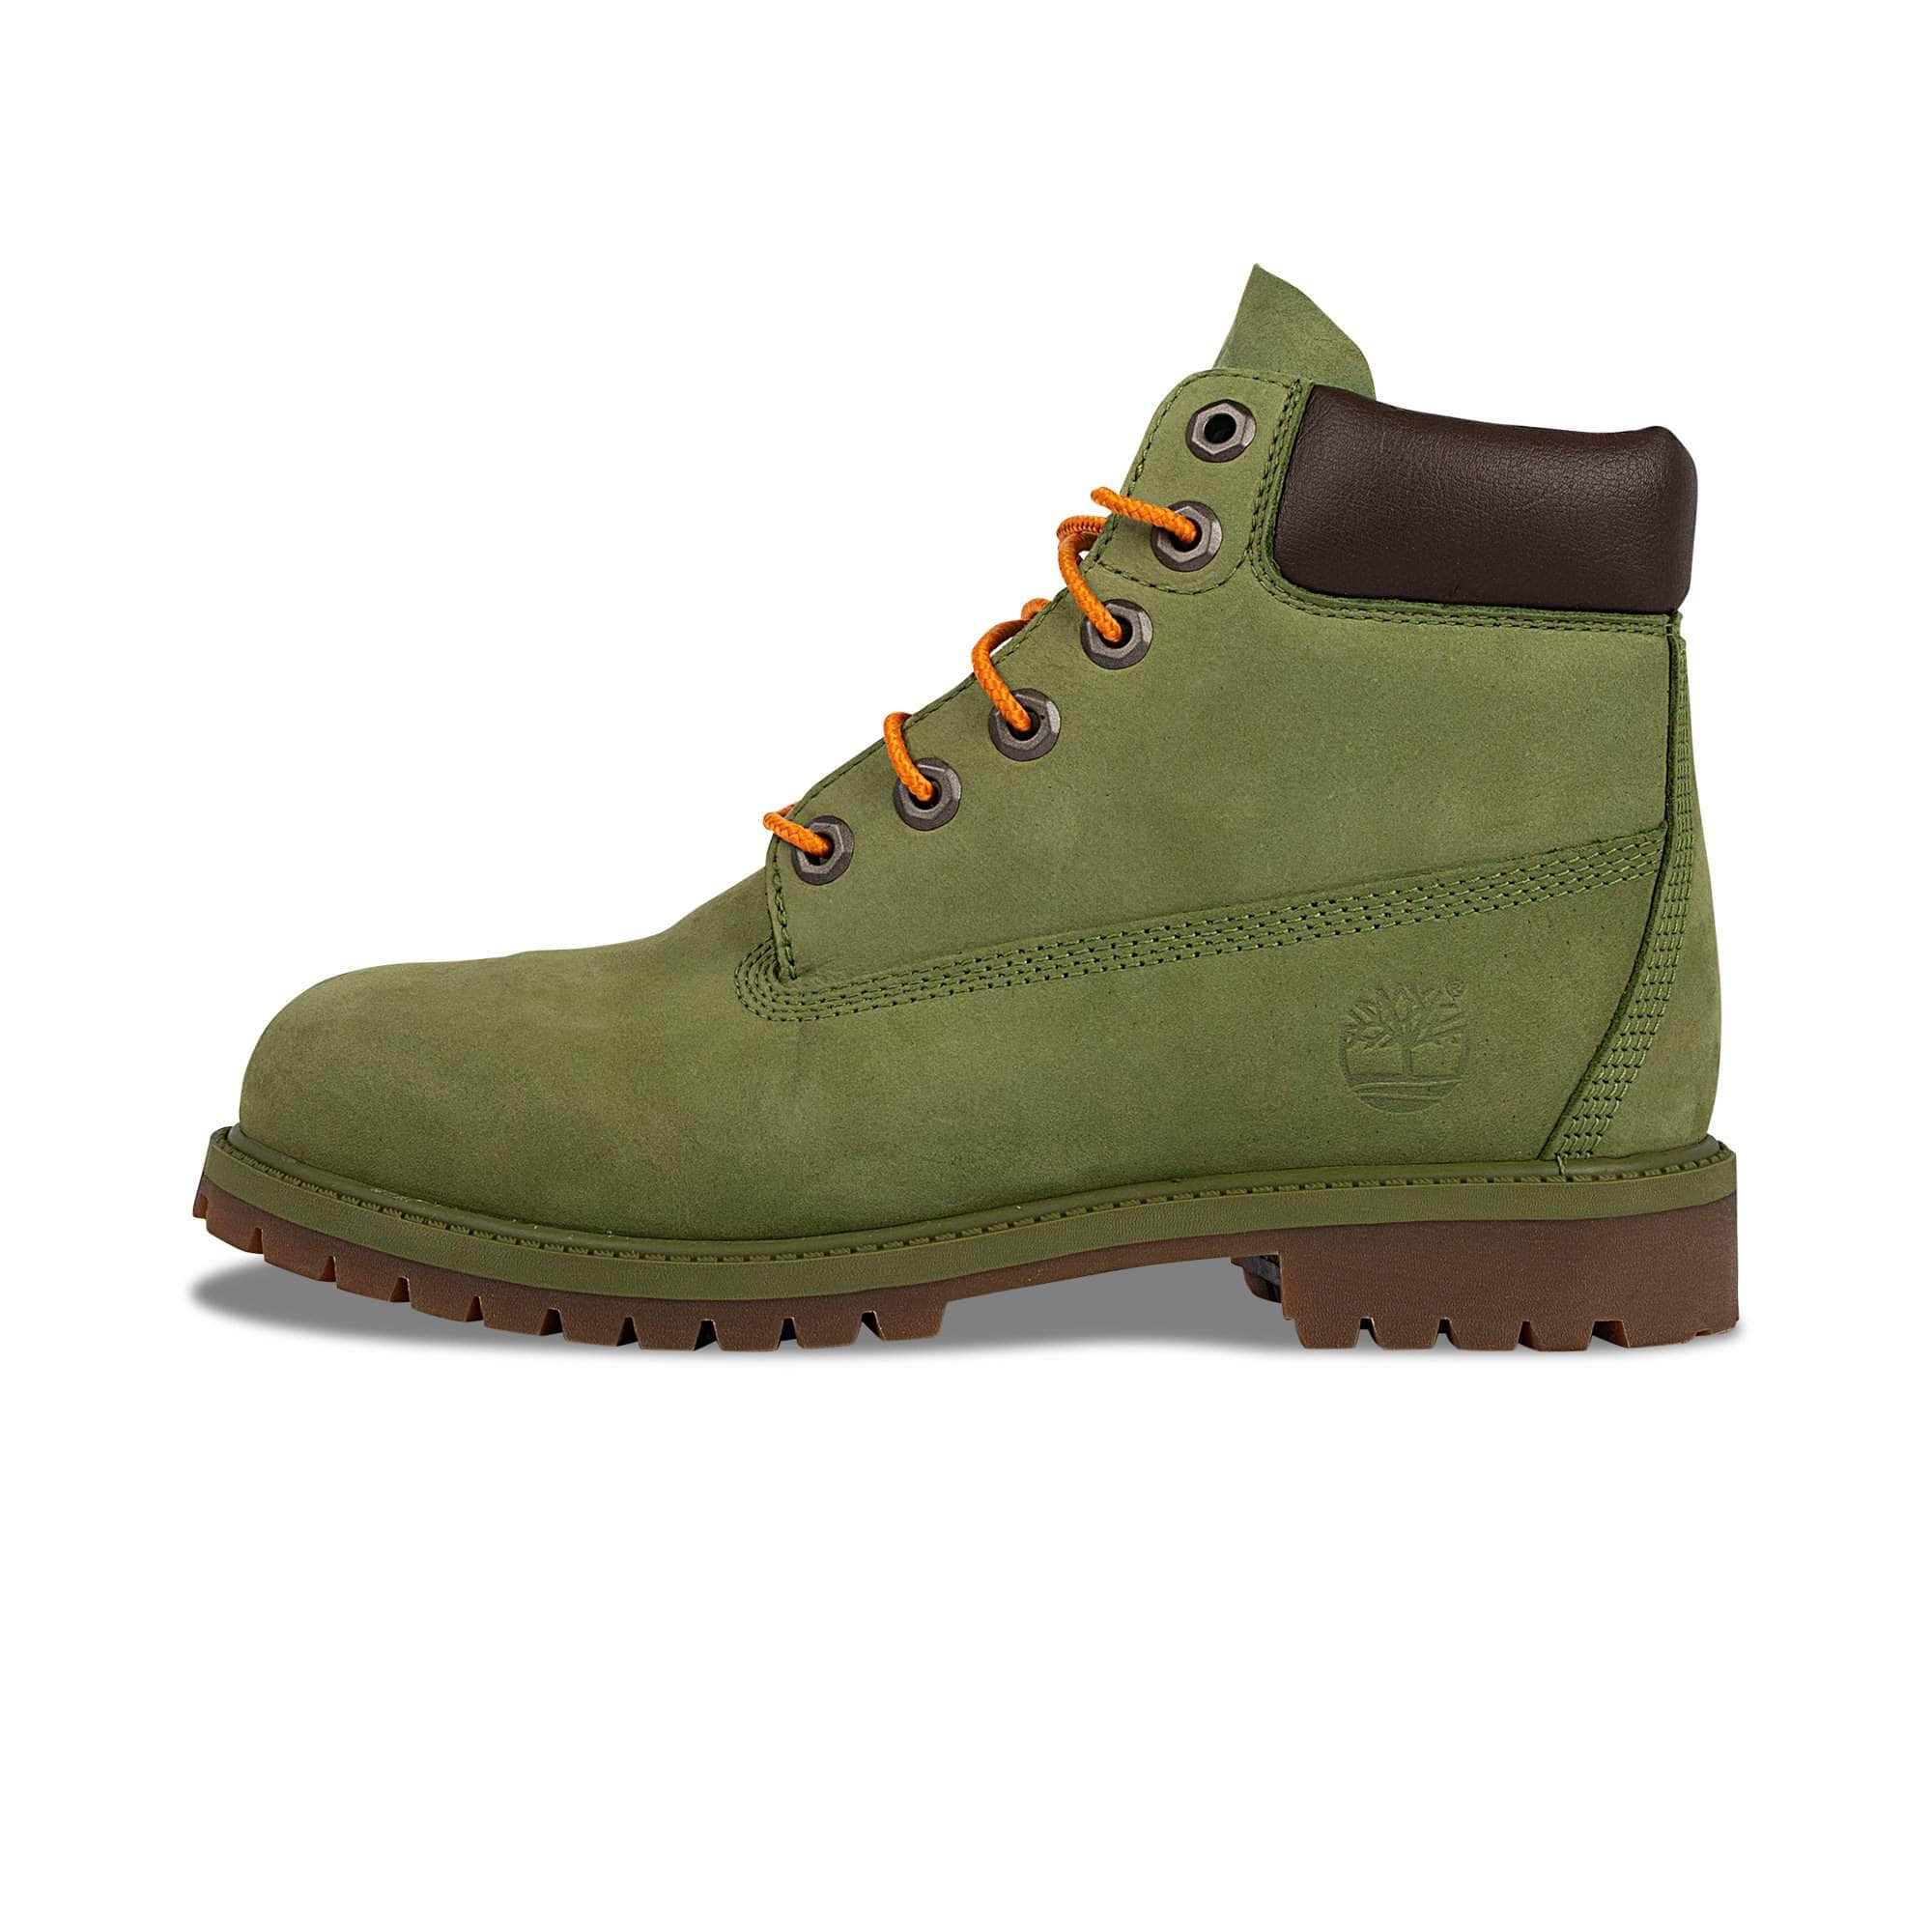 Timberland FOOTWEAR Timberland 6-Inch Mid - Boy's Grade School